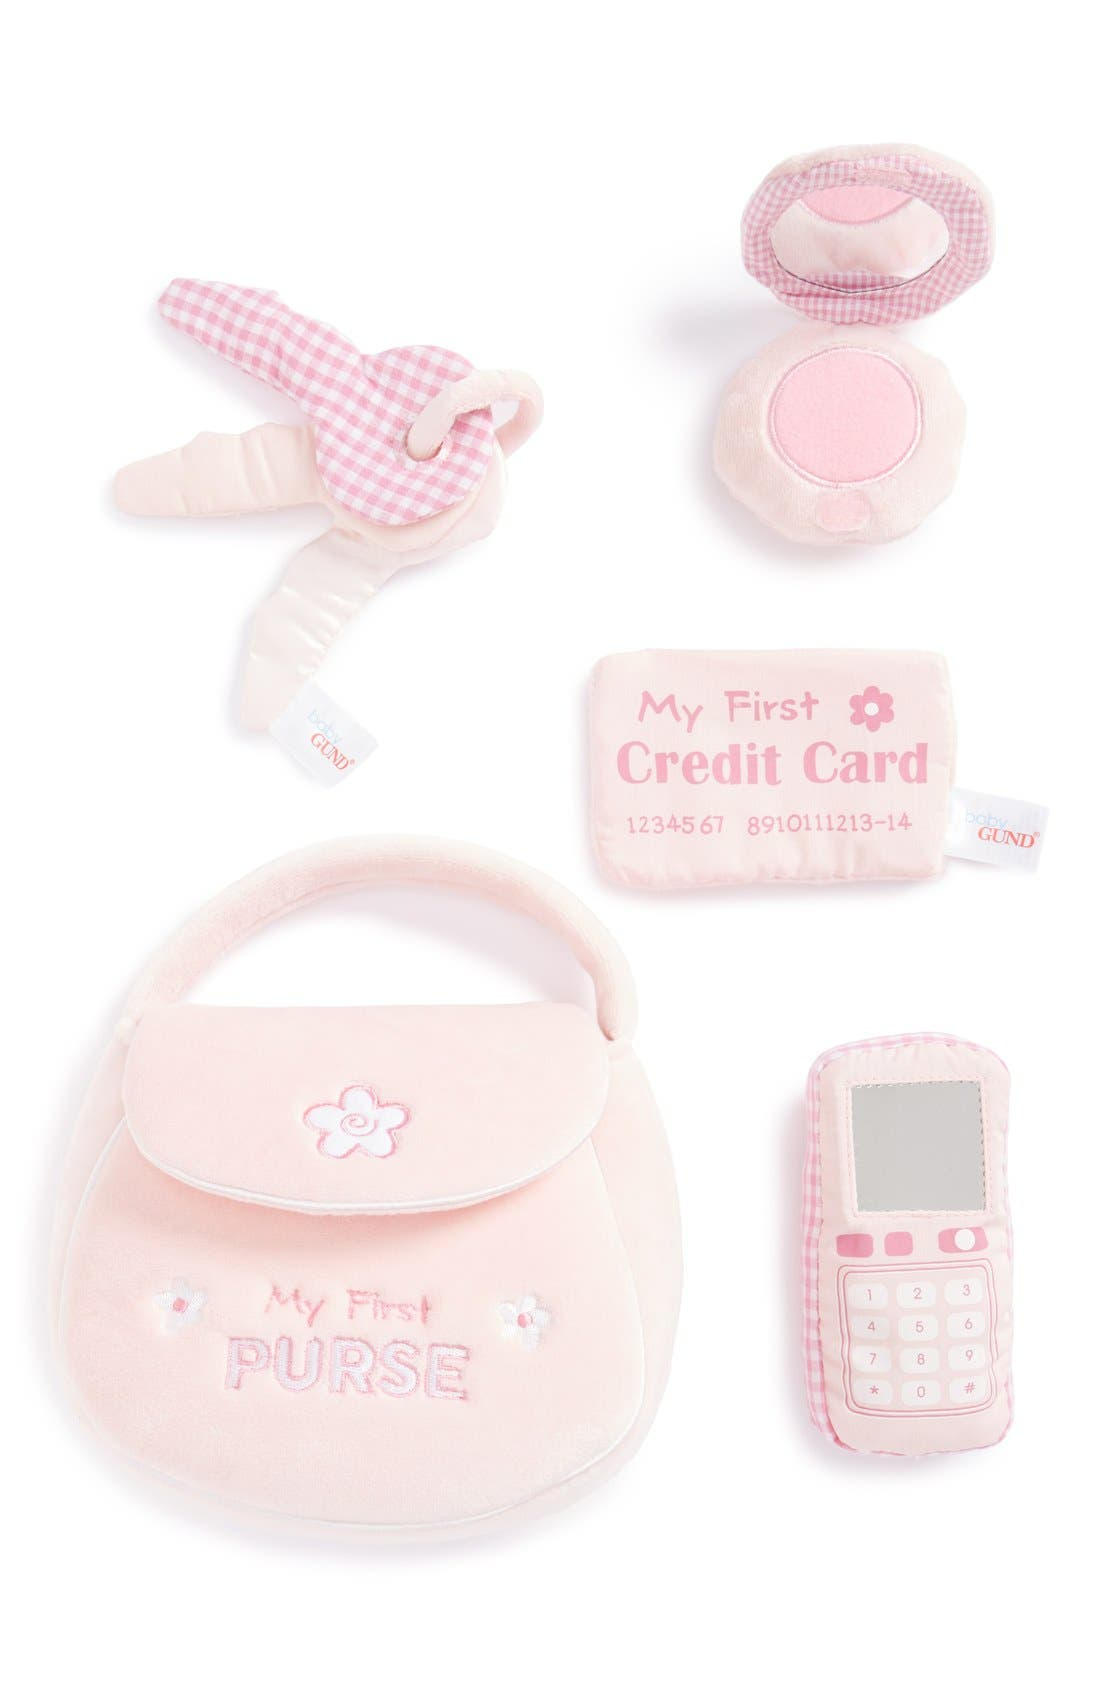 Baby Gund 'My First Purse' Play Set